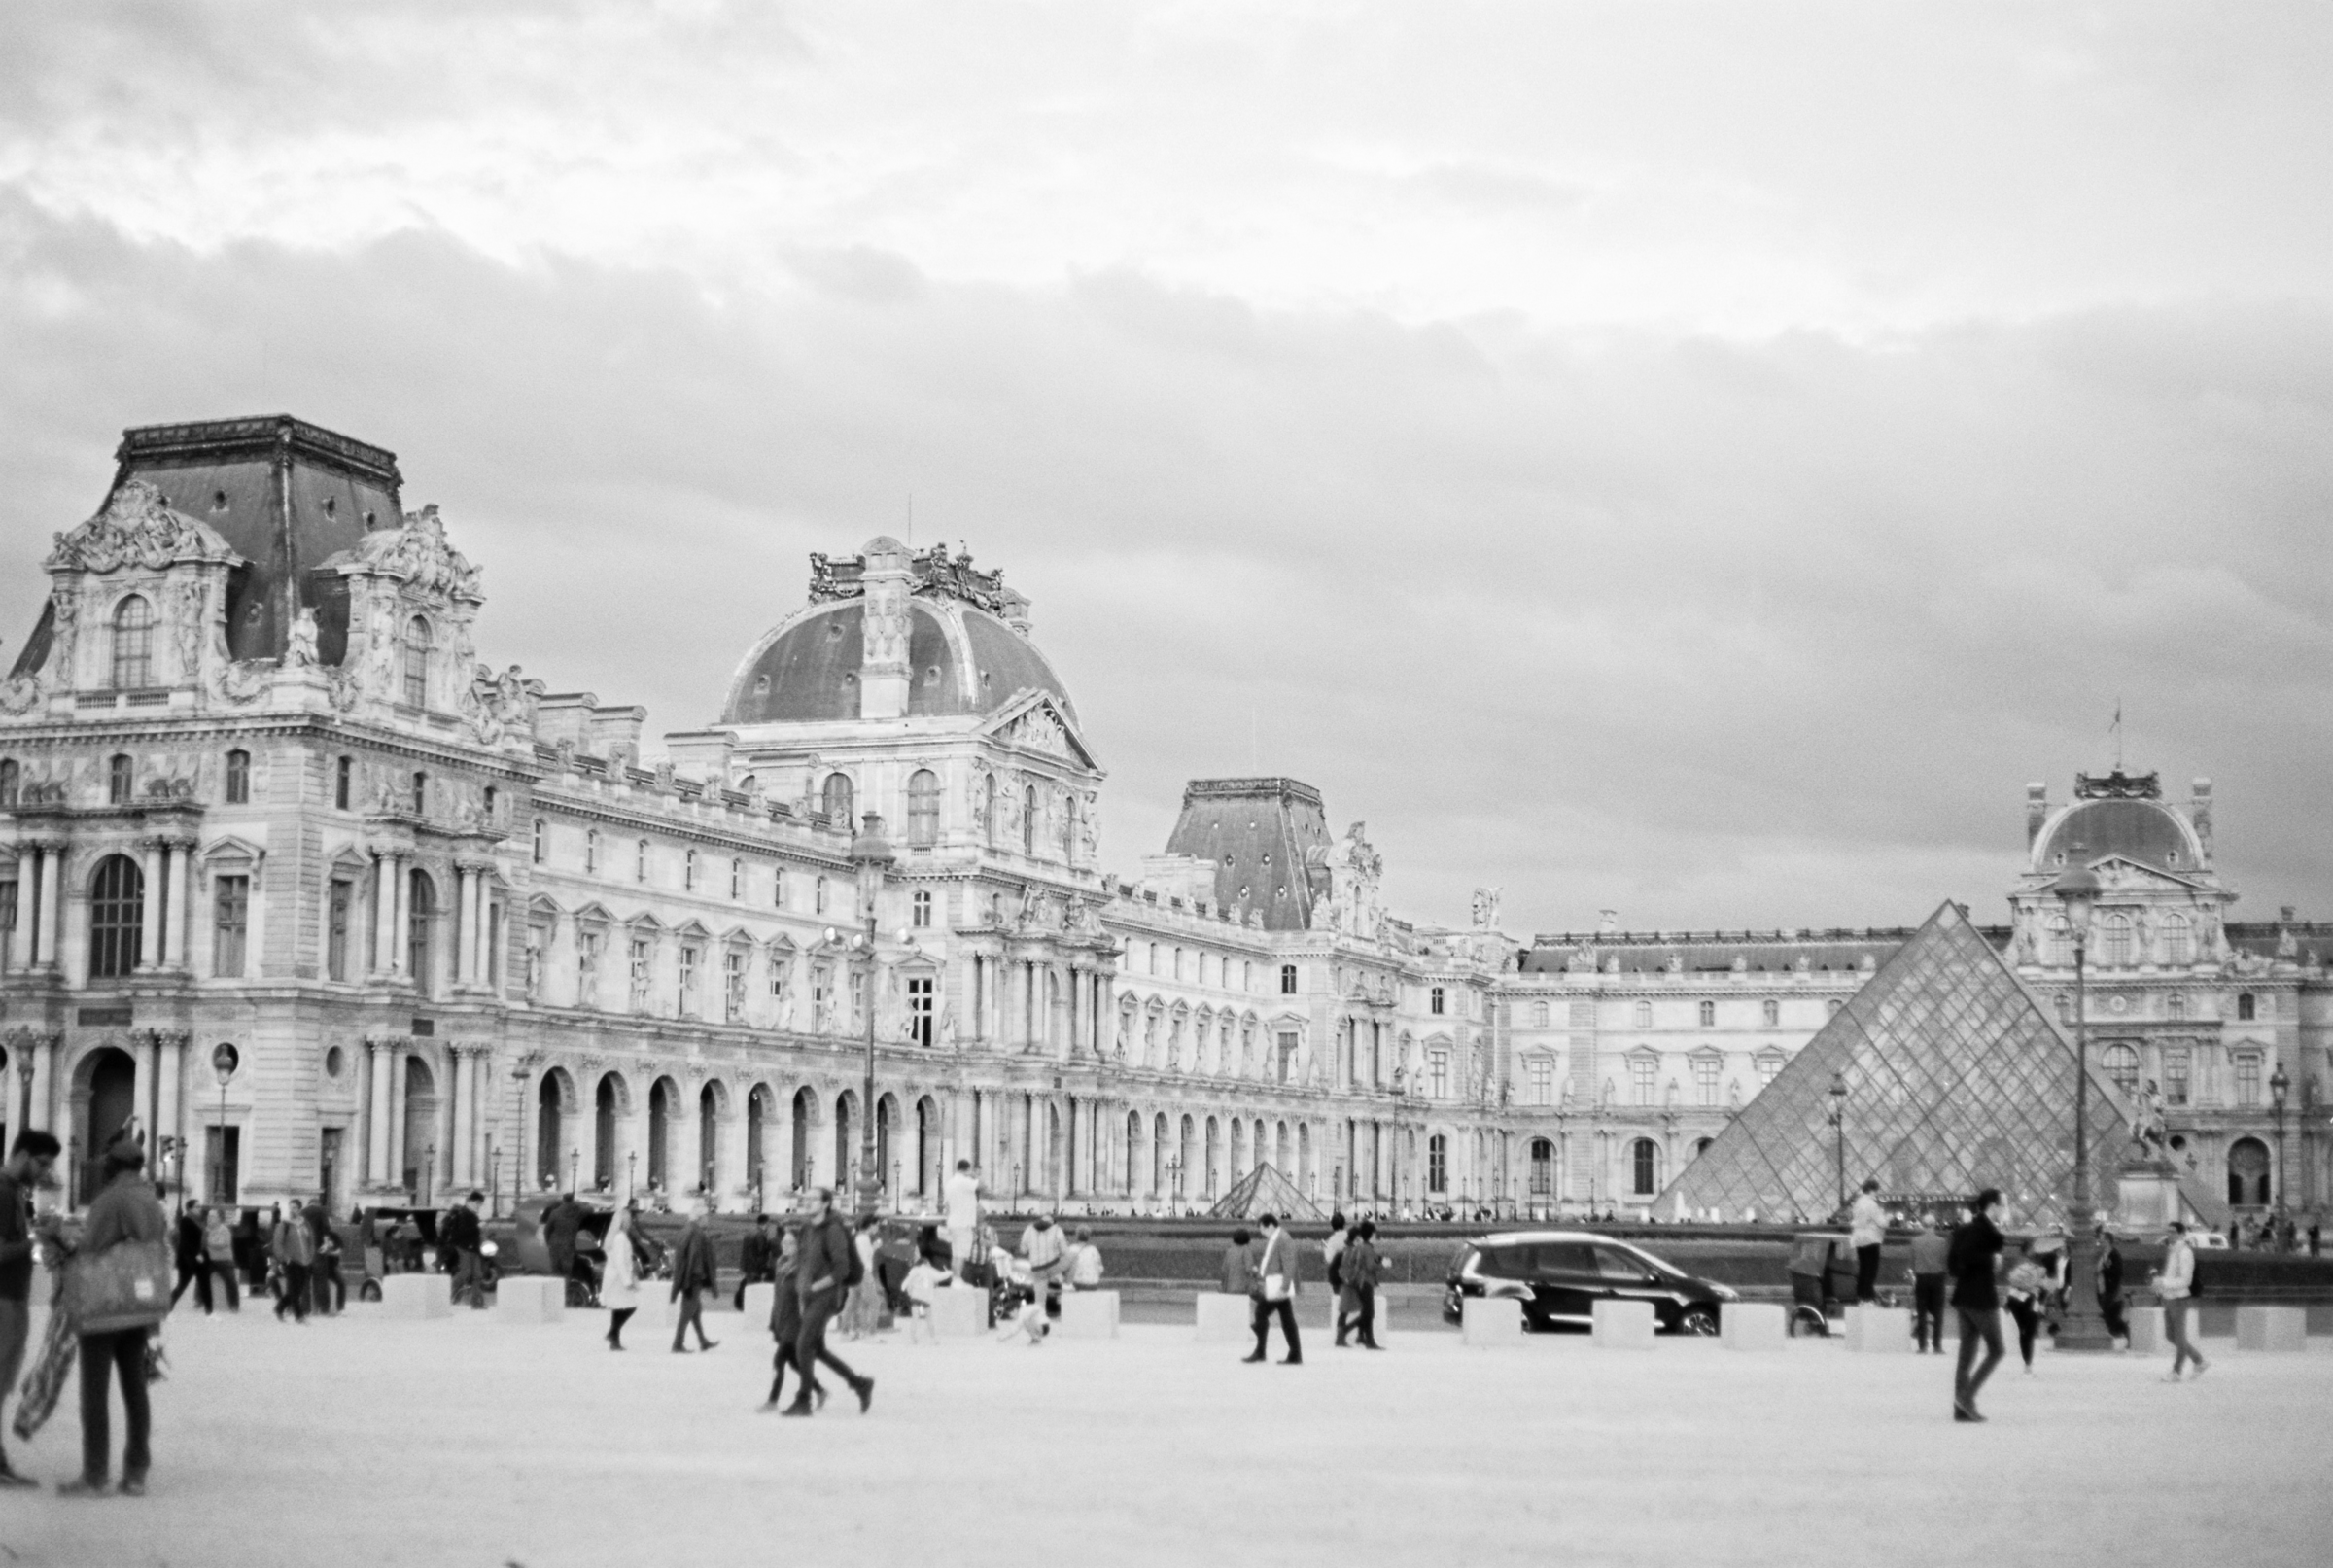 Paris, Jacqueline Anne Photography